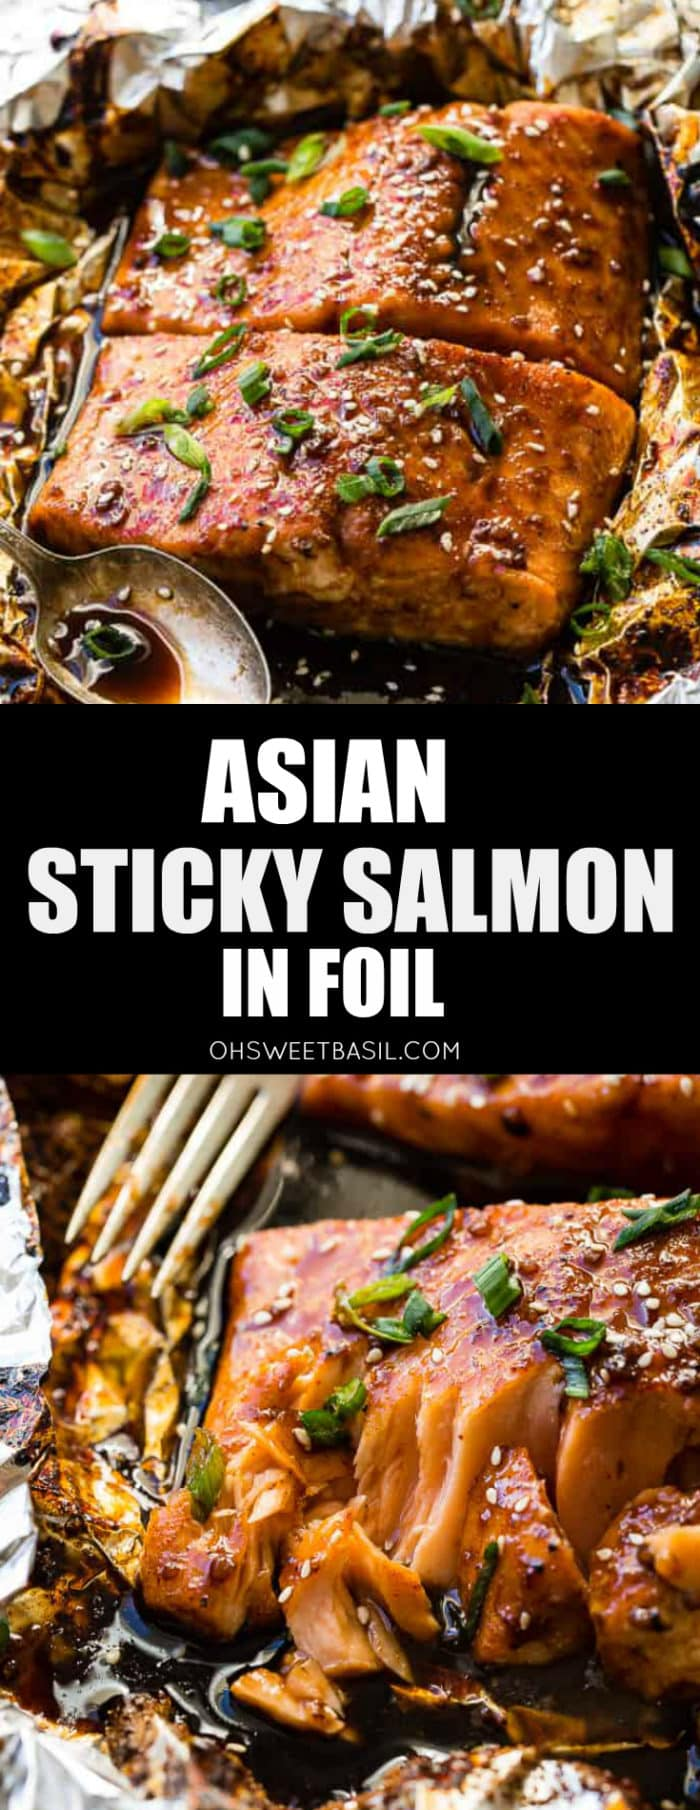 A piece of foil with two fillets of salmon covered in a sticky dark brown Asian sauce with sliced green onions and sesame seeds with a vintage spoon with a little sauce on it next to the salmon